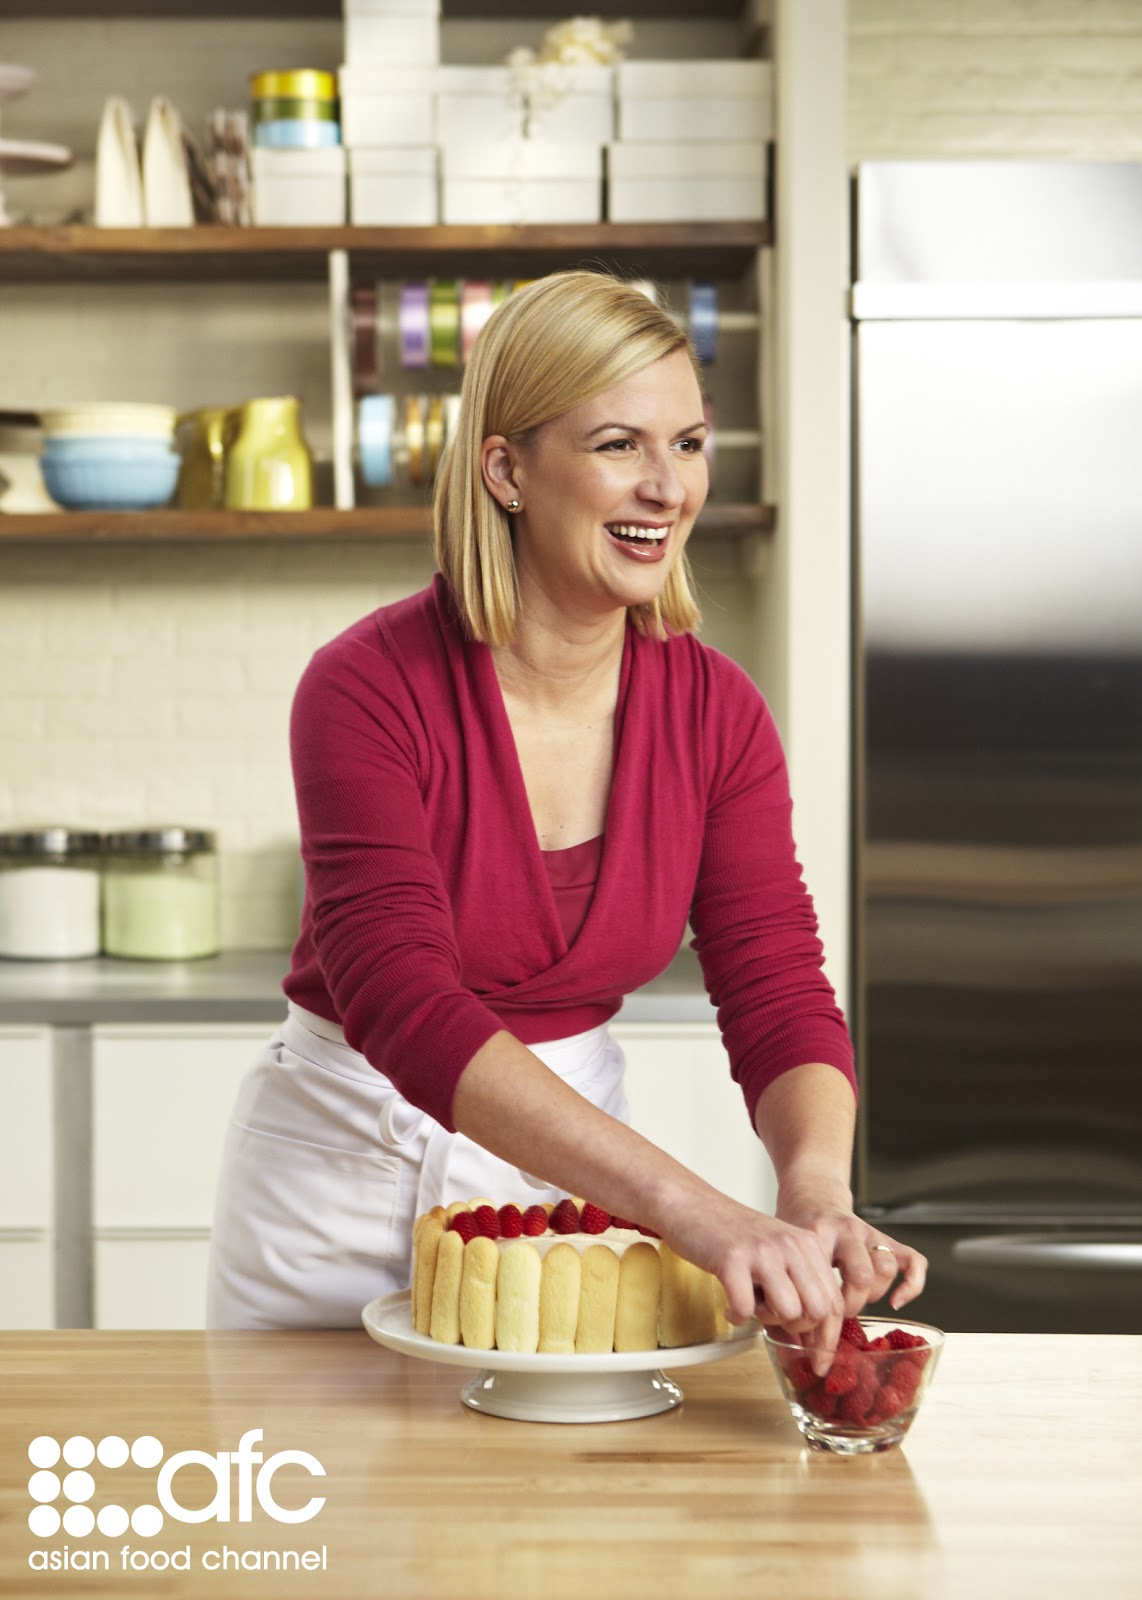 Chef anna olsons fresh flavours tour presented by the asian food canadian chef anna olson cooking show asian food channel tortire pumpkin brule forumfinder Choice Image